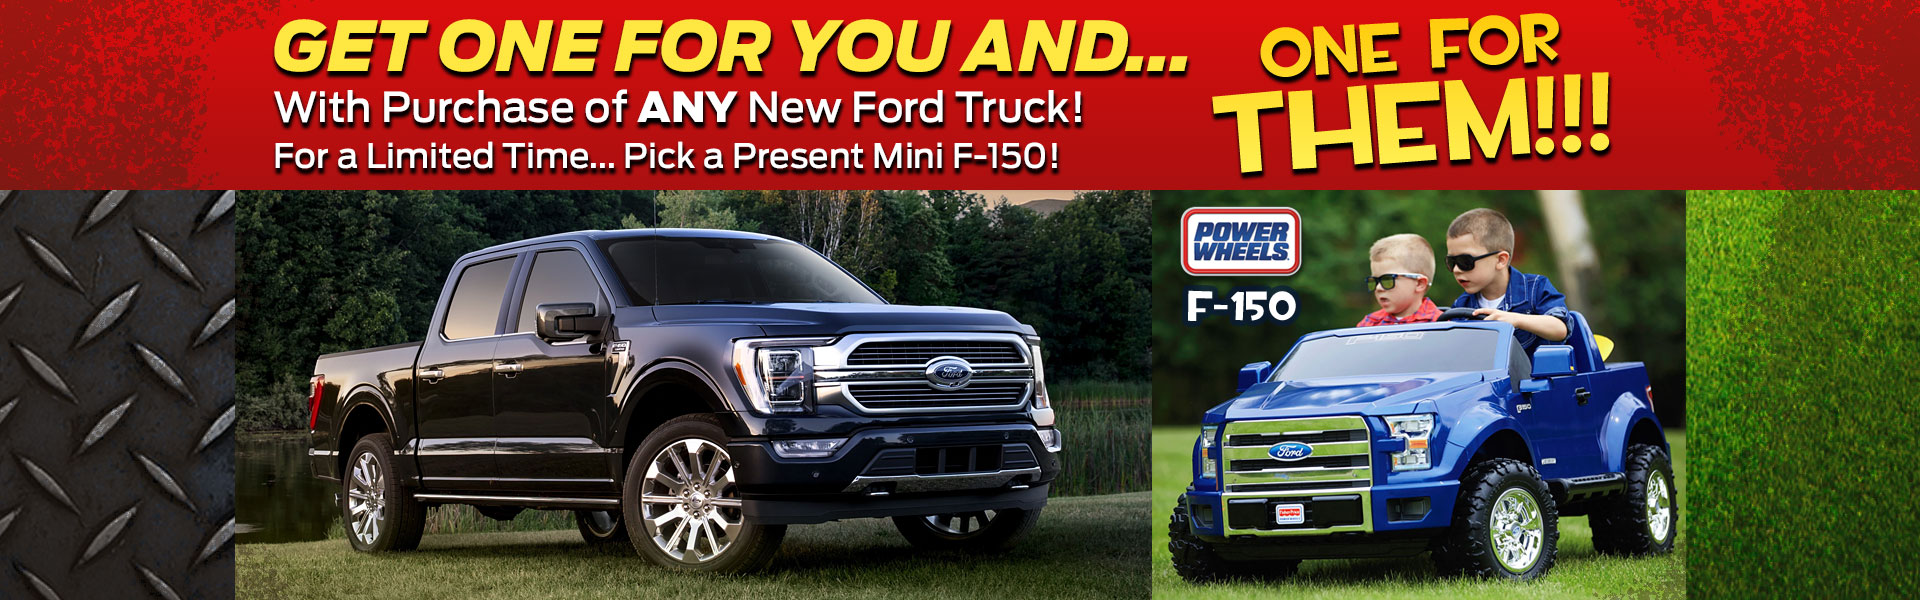 Get a Mini F-150 with New Ford Truck Purchase!